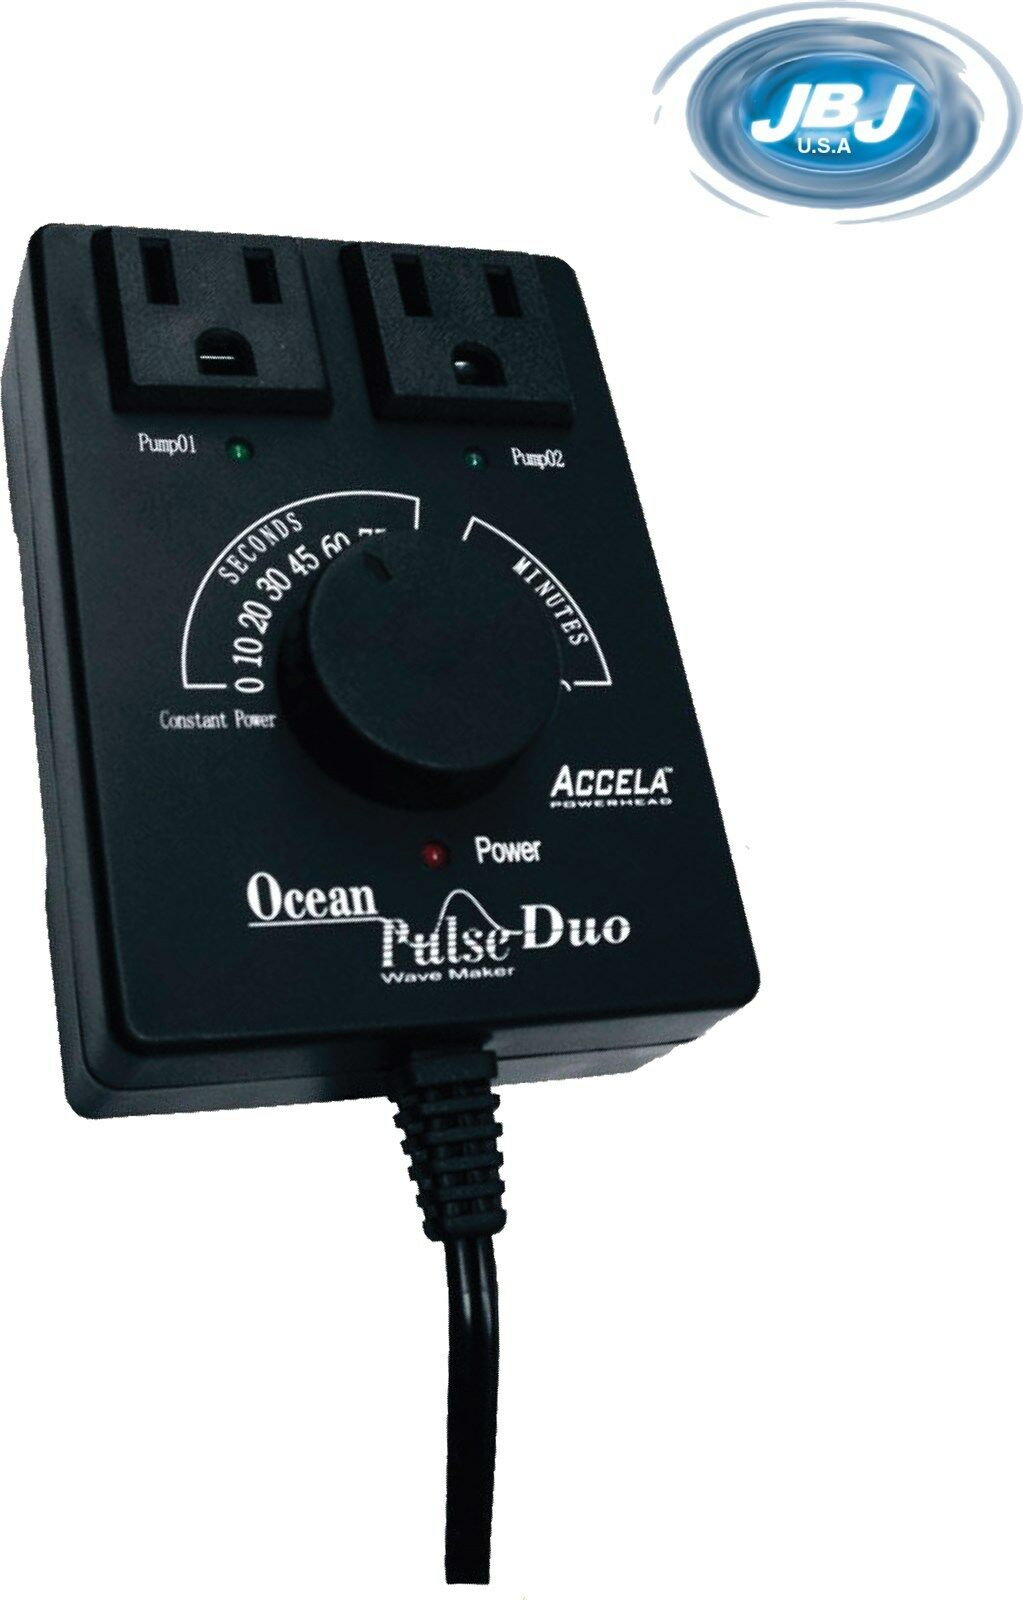 JBJ Ocean Pulse Duo 2 Pump Controller Wave Maker Wm-01 Fo...